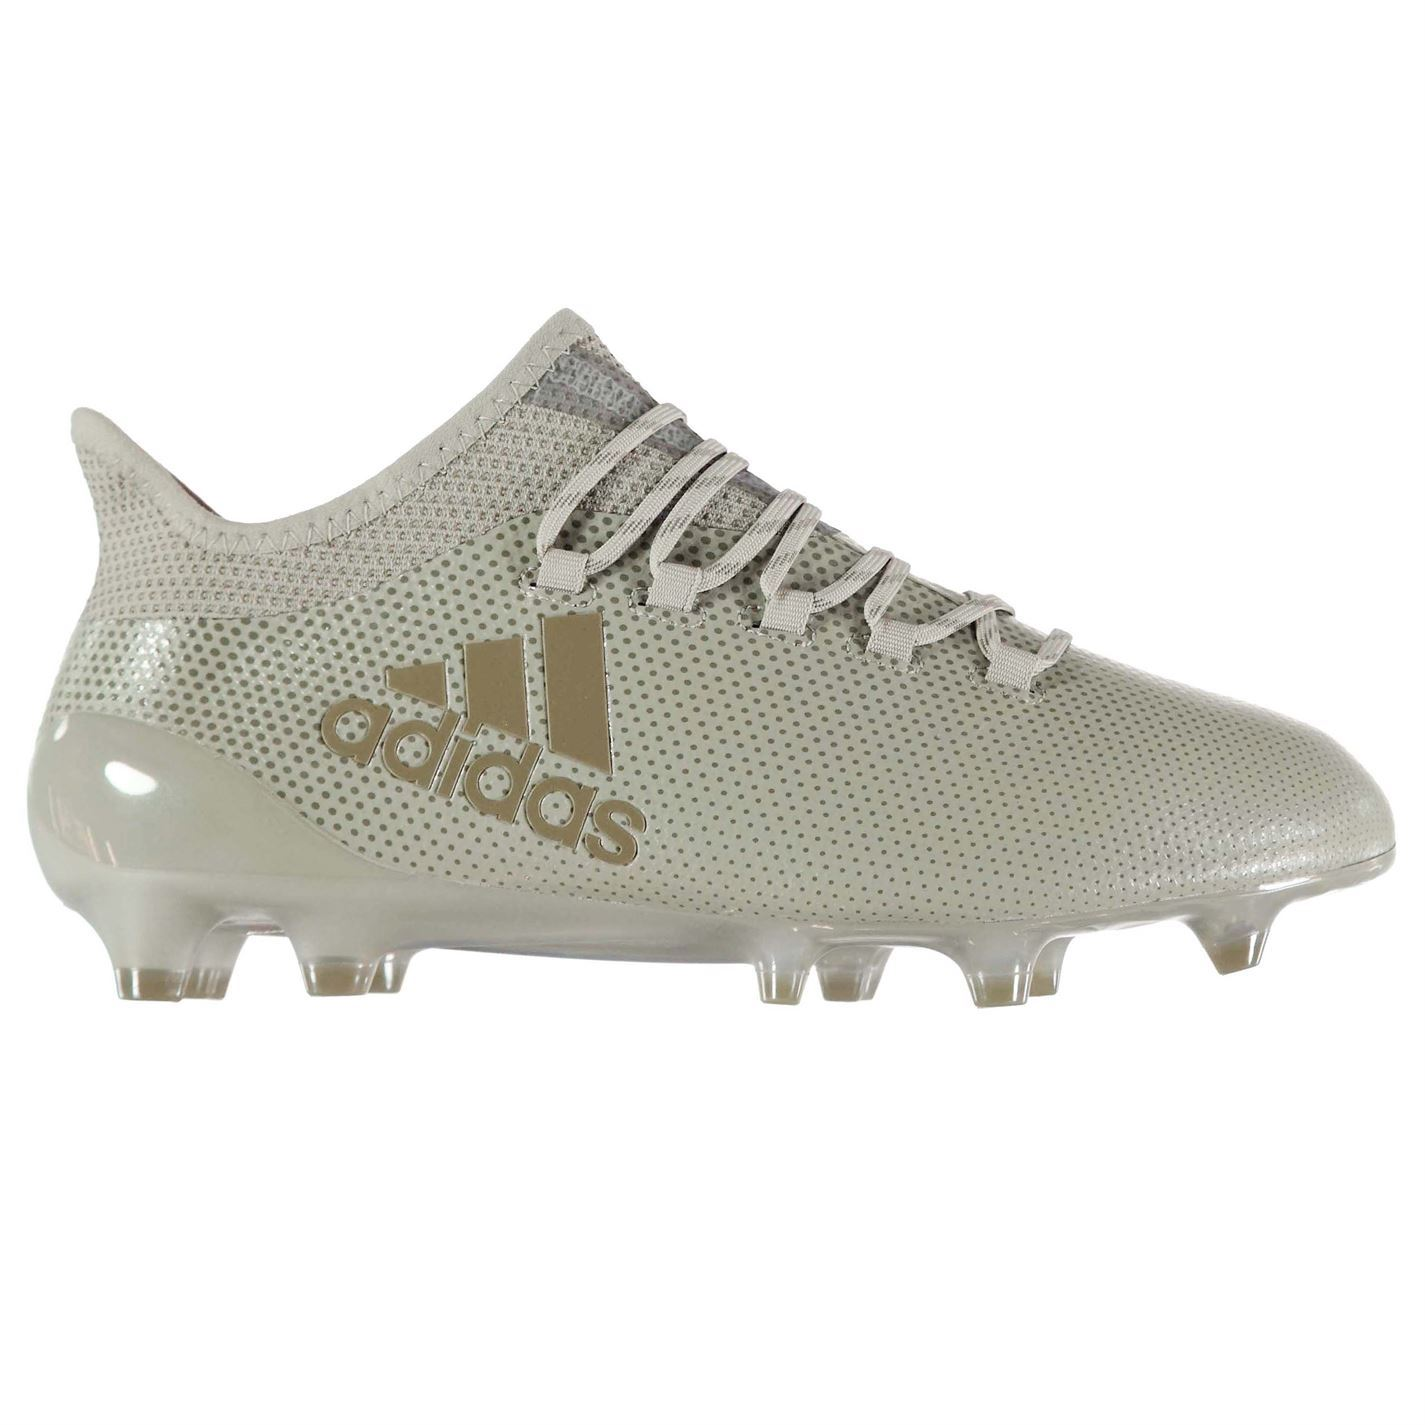 cd37d64c45277 Details about adidas X 17.1 FG Firm Ground Football Boots Mens Brown Soccer  Shoes Cleats